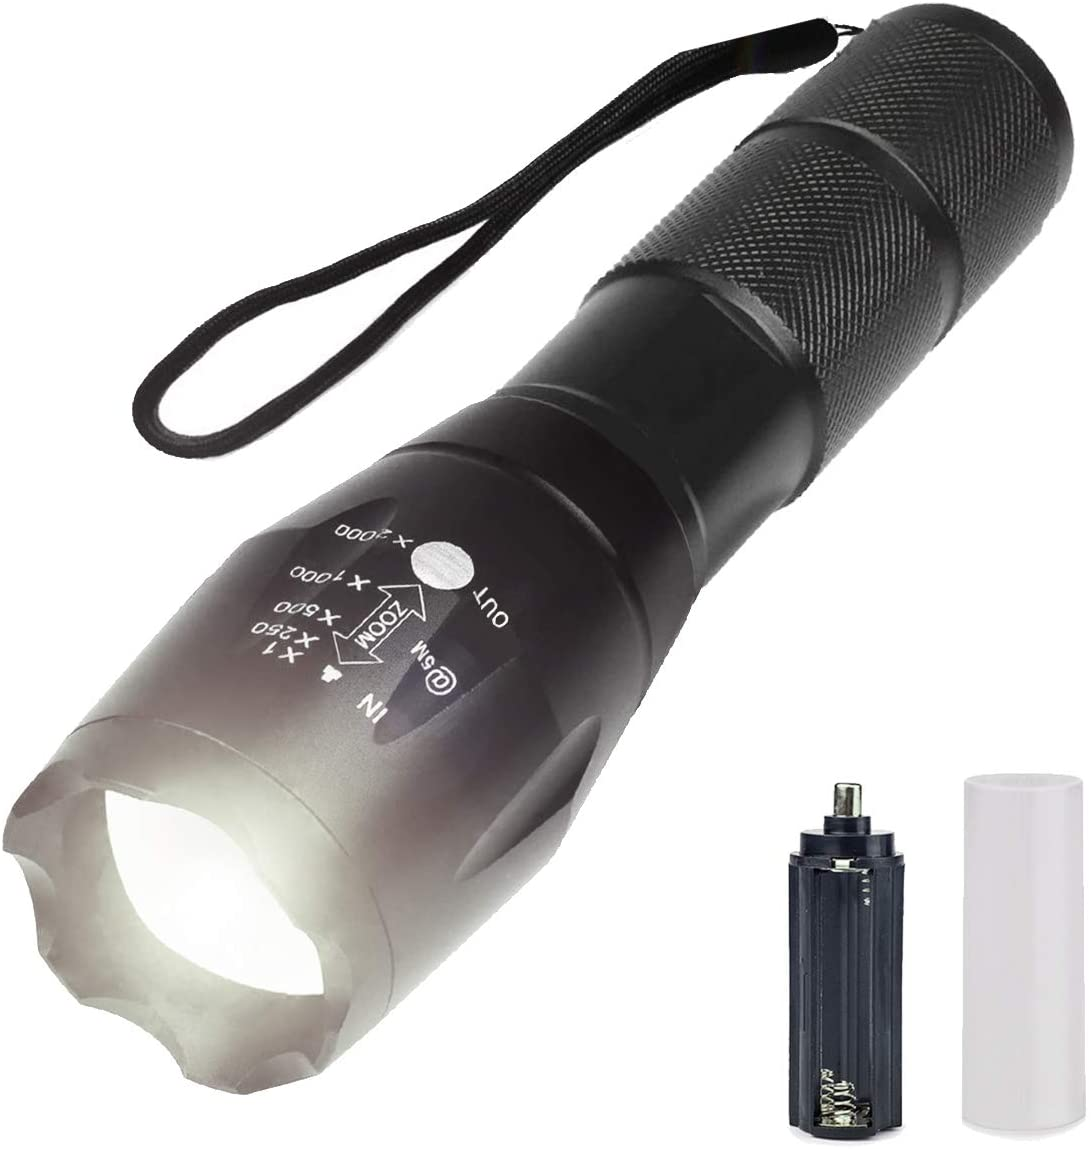 UniqueFire XM-L2 LED Tactical Flashlight White Light 1200 Lumen Torch Outdoor Handheld Zoomable Torch with 5 Light Modes Ultra Bright Adjustable Focus Water Resistant